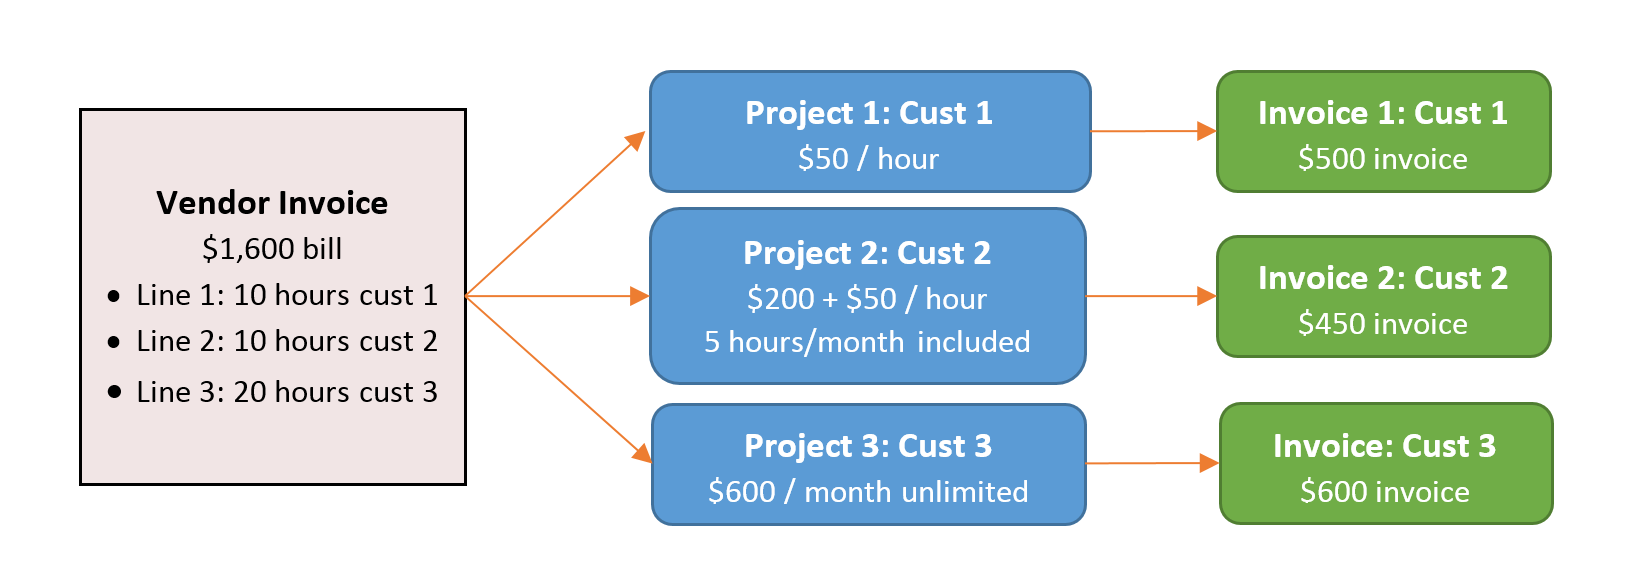 Setting up a Recurring Billing Project in Acumatica